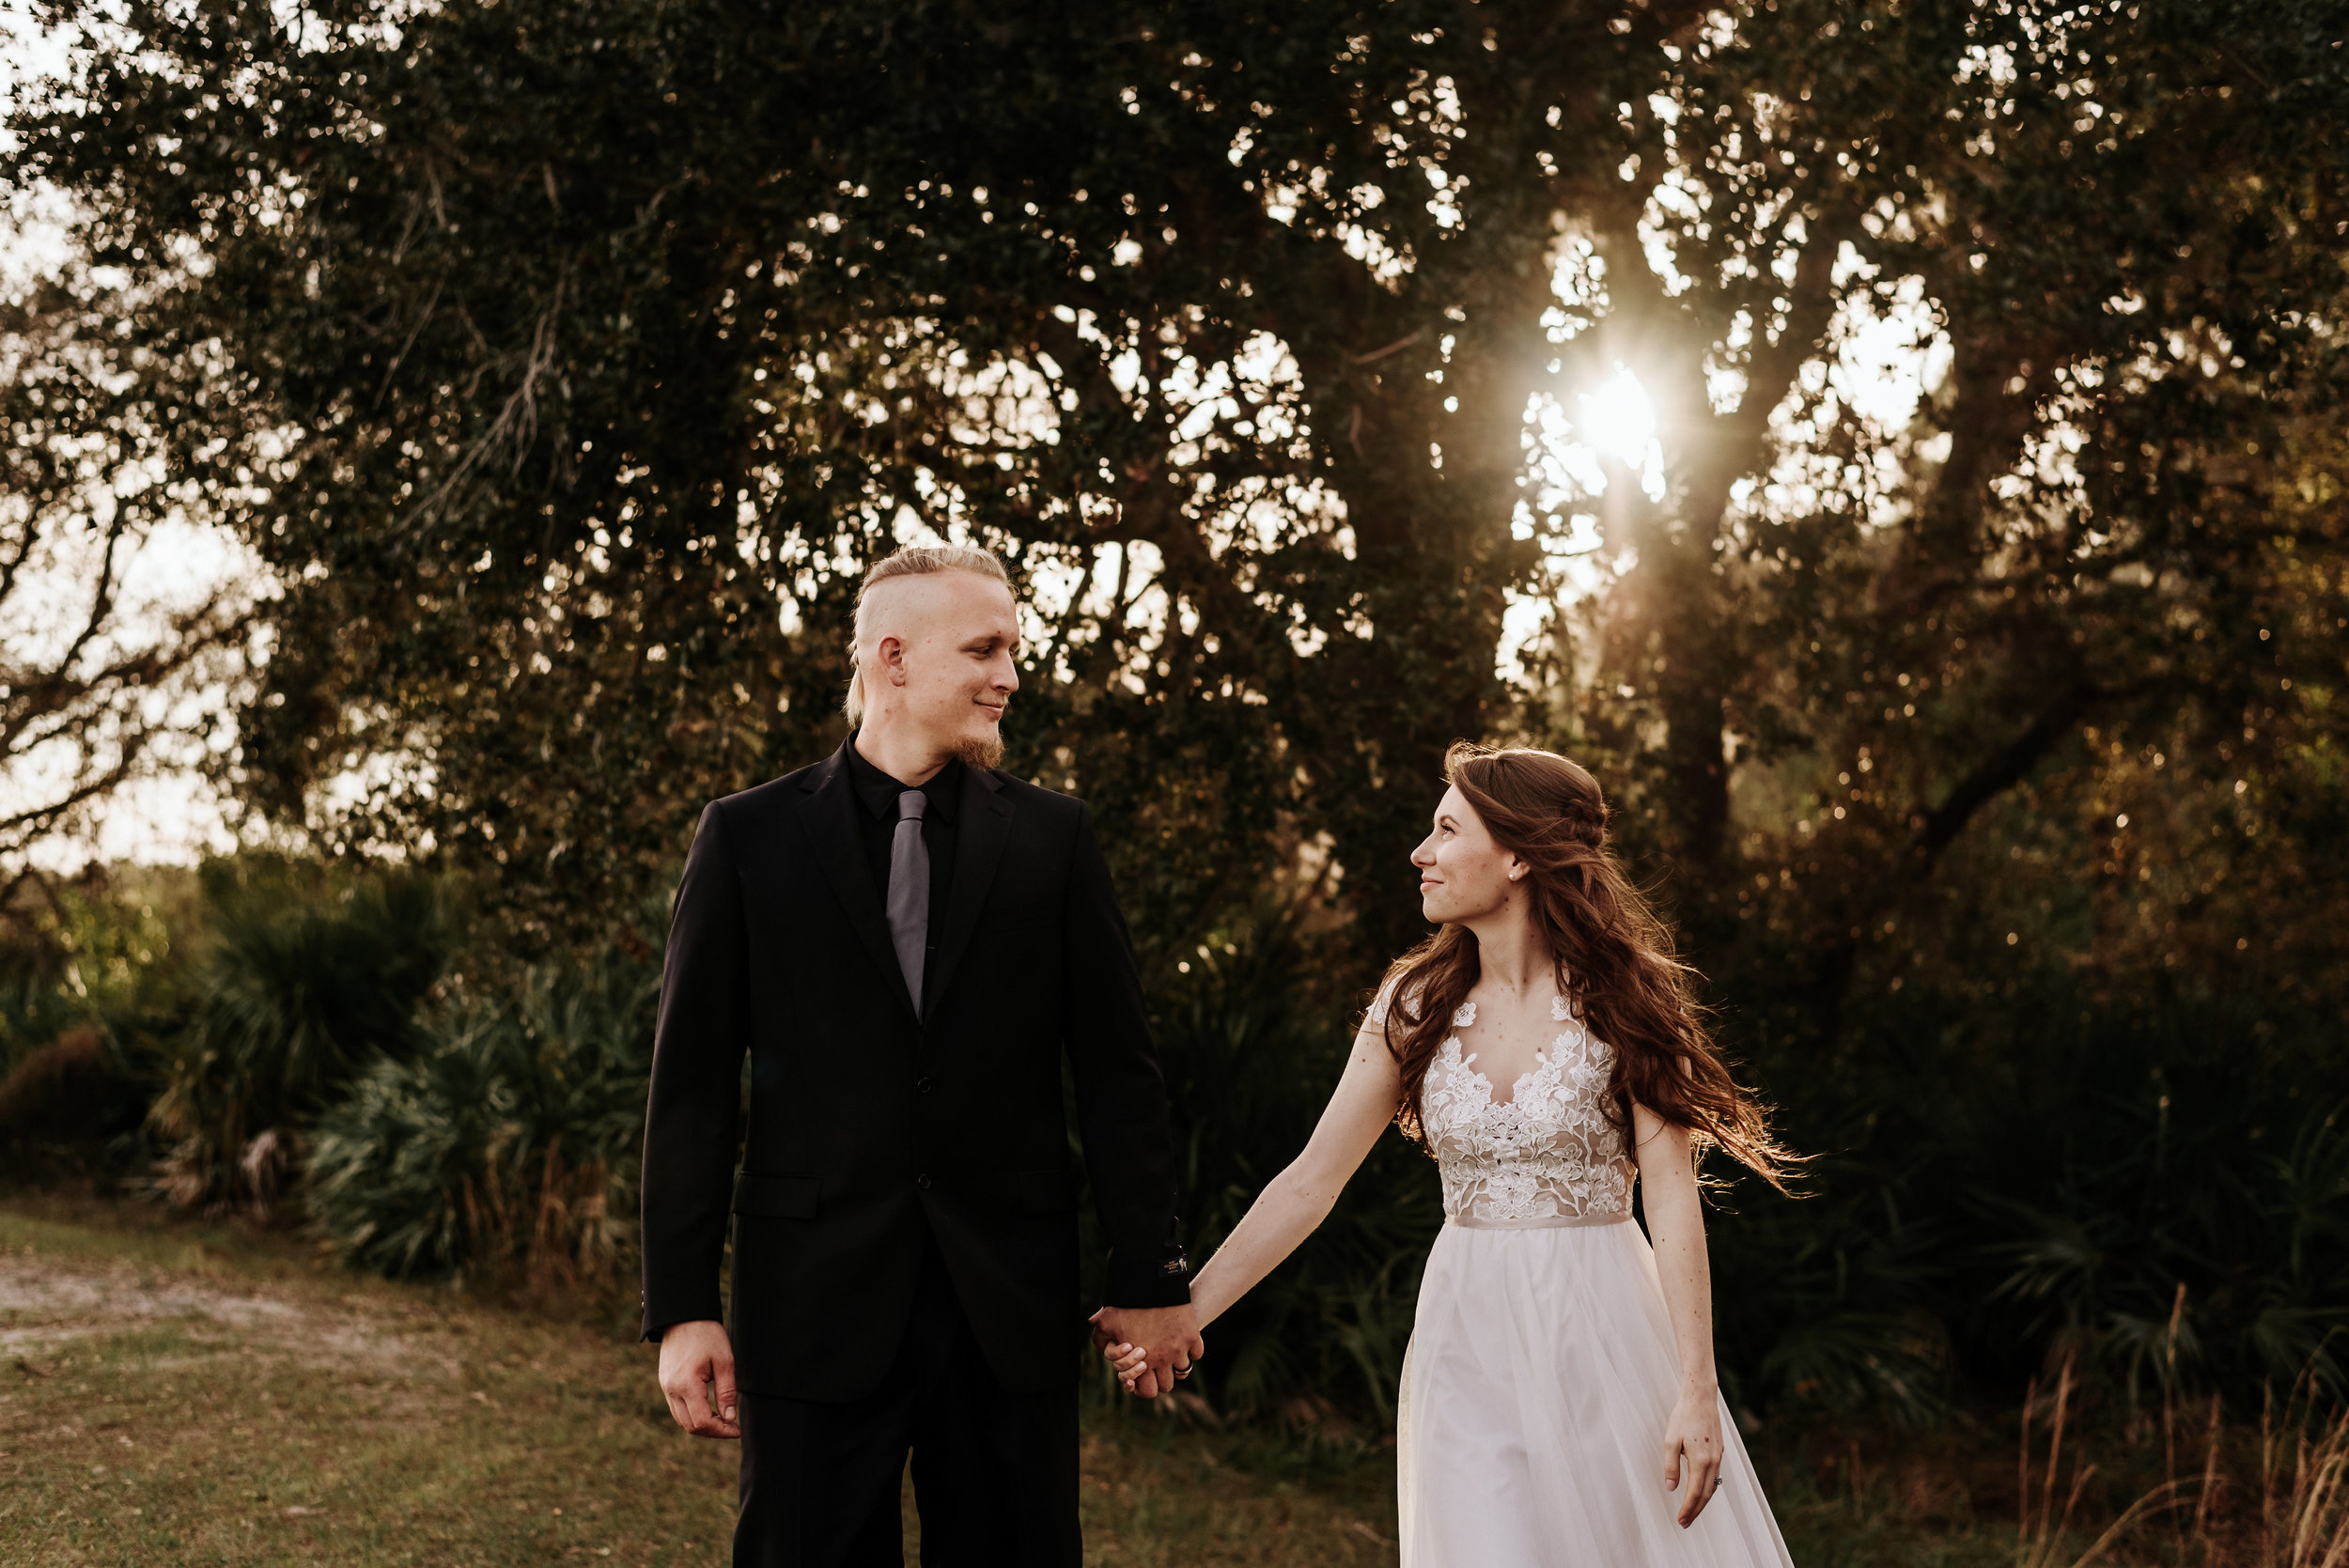 Jess_Micah_Portrait_Session_Wedding_Vero_Beach_Florida_Photography_by_V_0271.jpg